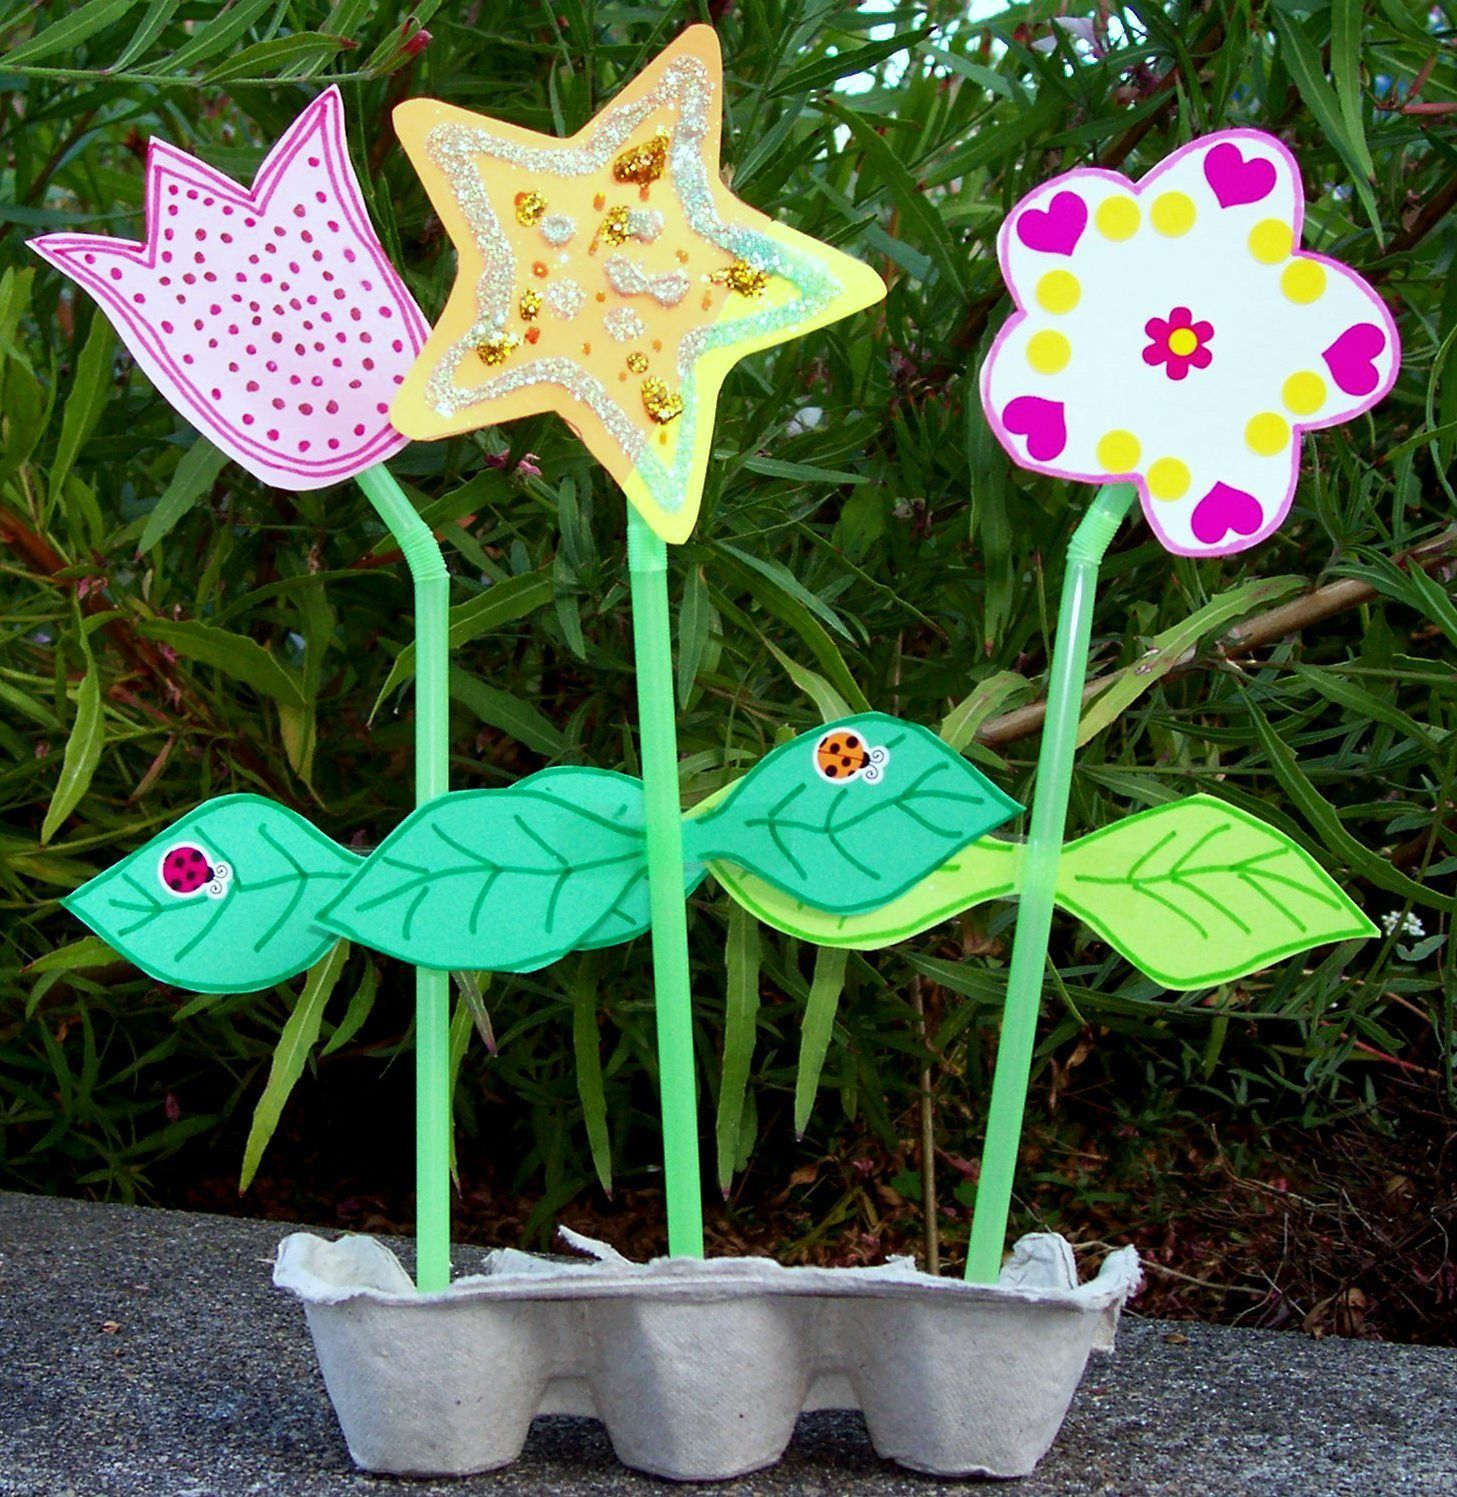 43 fun and easy little kids craft ideas egg cartons Egg carton flowers ideas